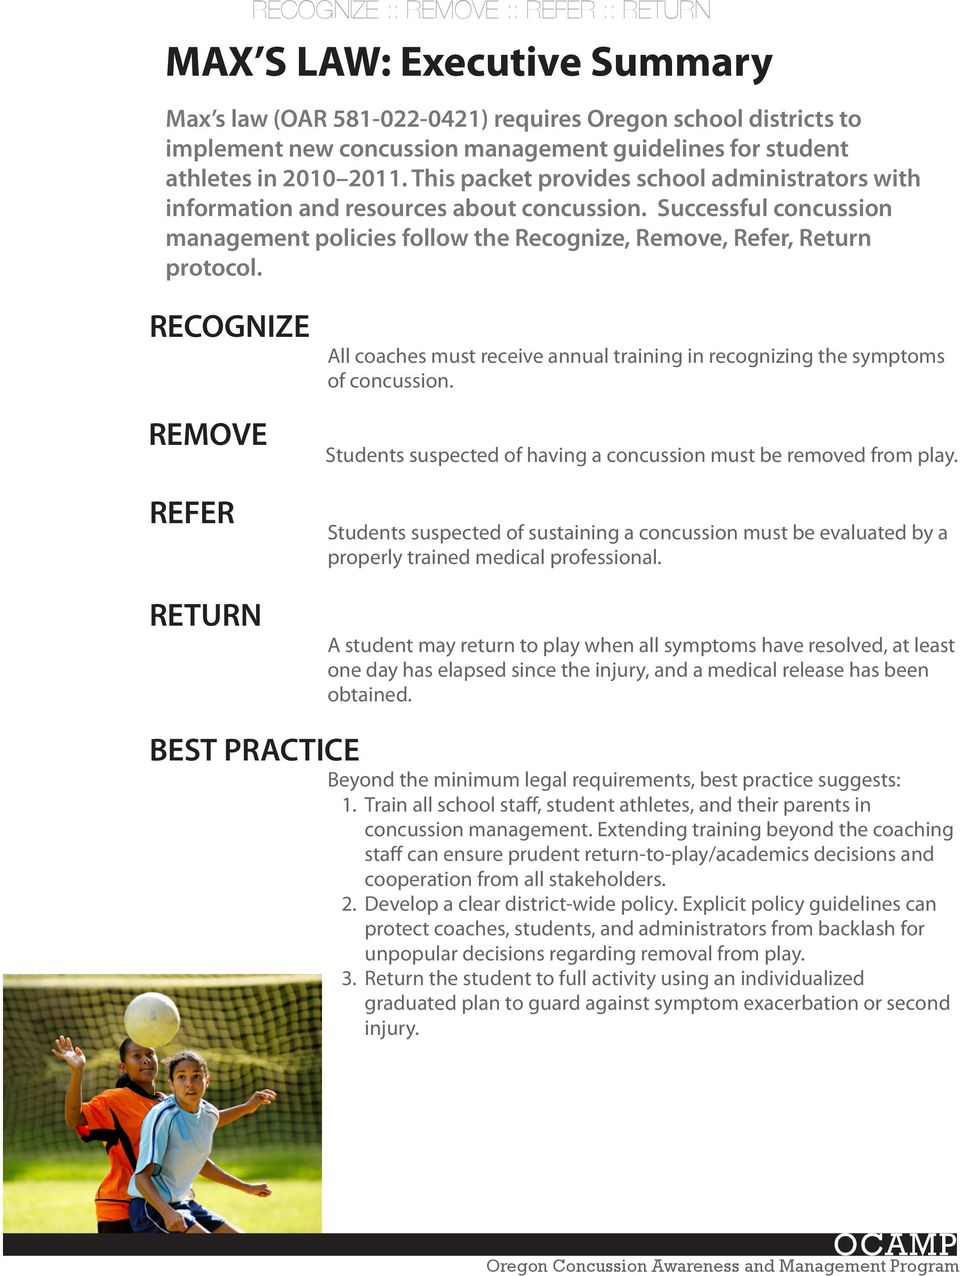 Successful concussion management policies follow the Recognize, Remove, Refer, Return protocol.